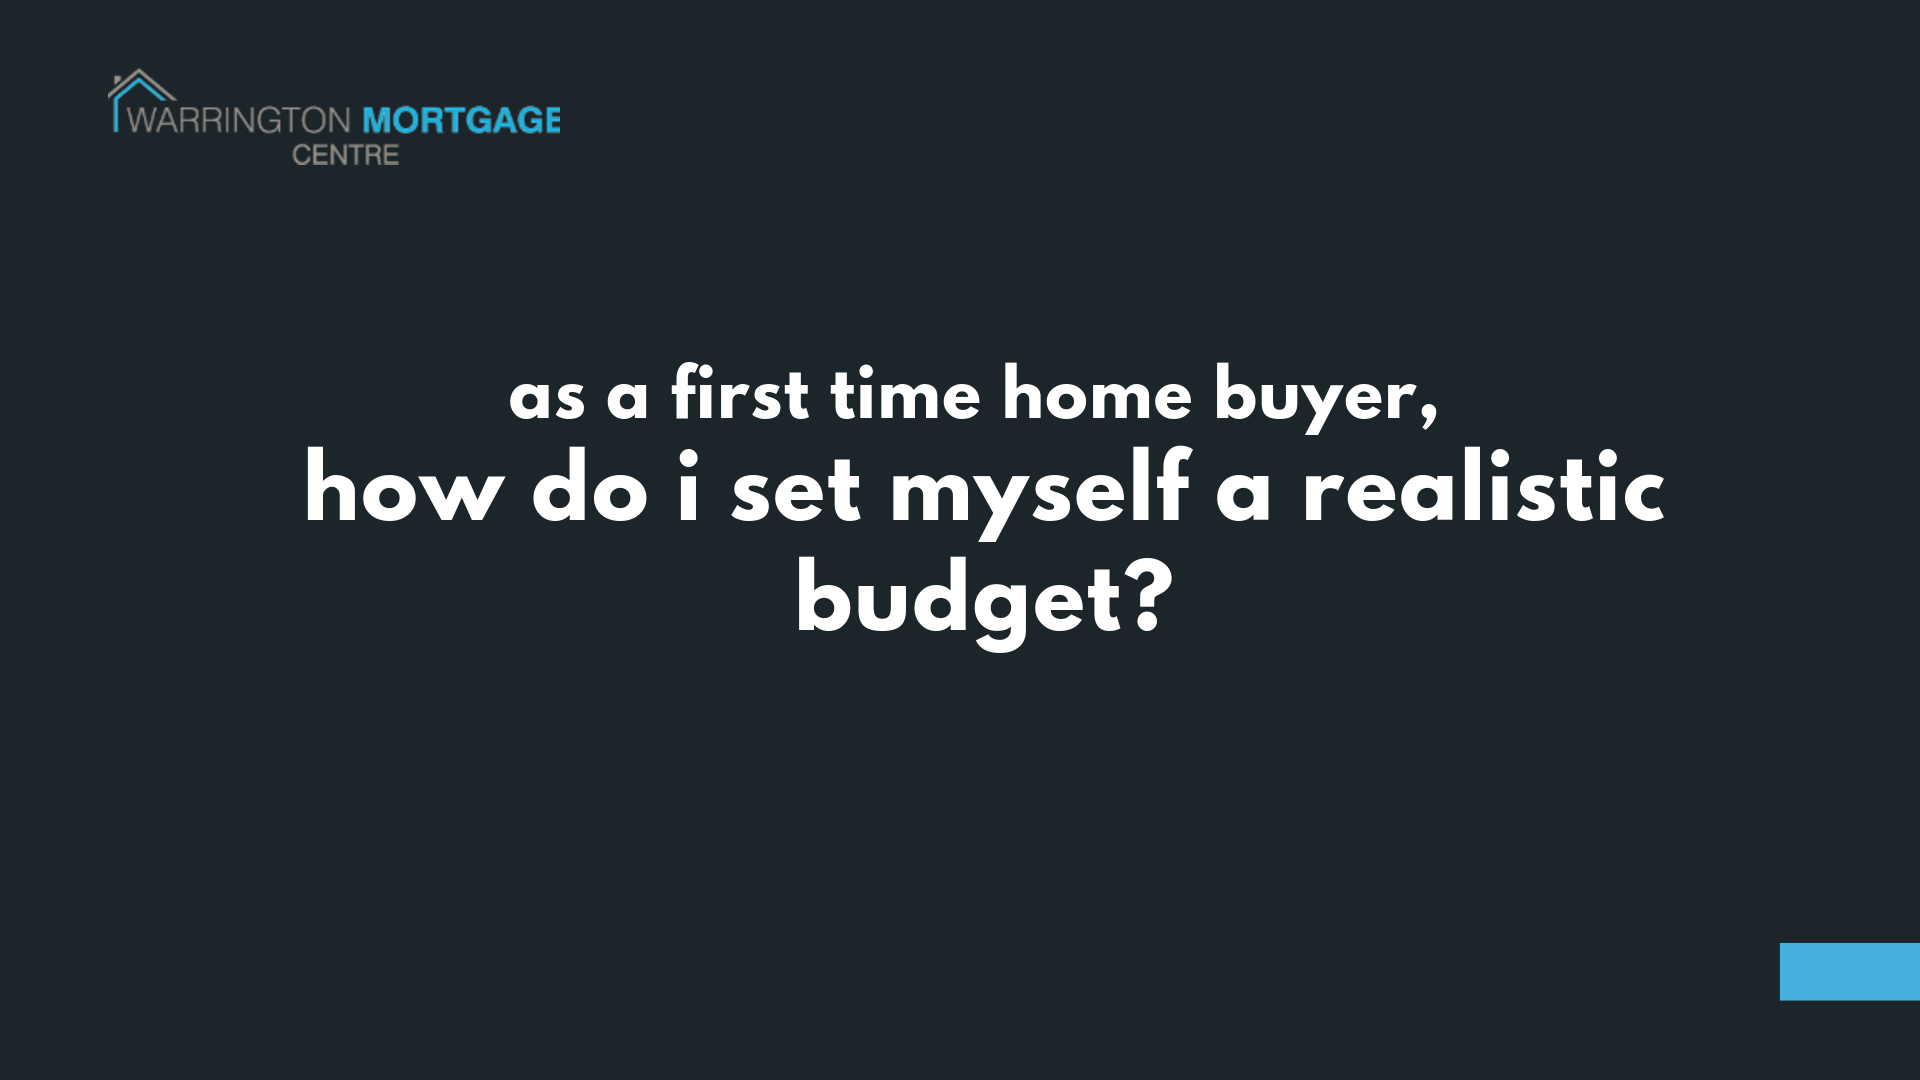 How to set a realistic mortgage budget as a first time home buyer